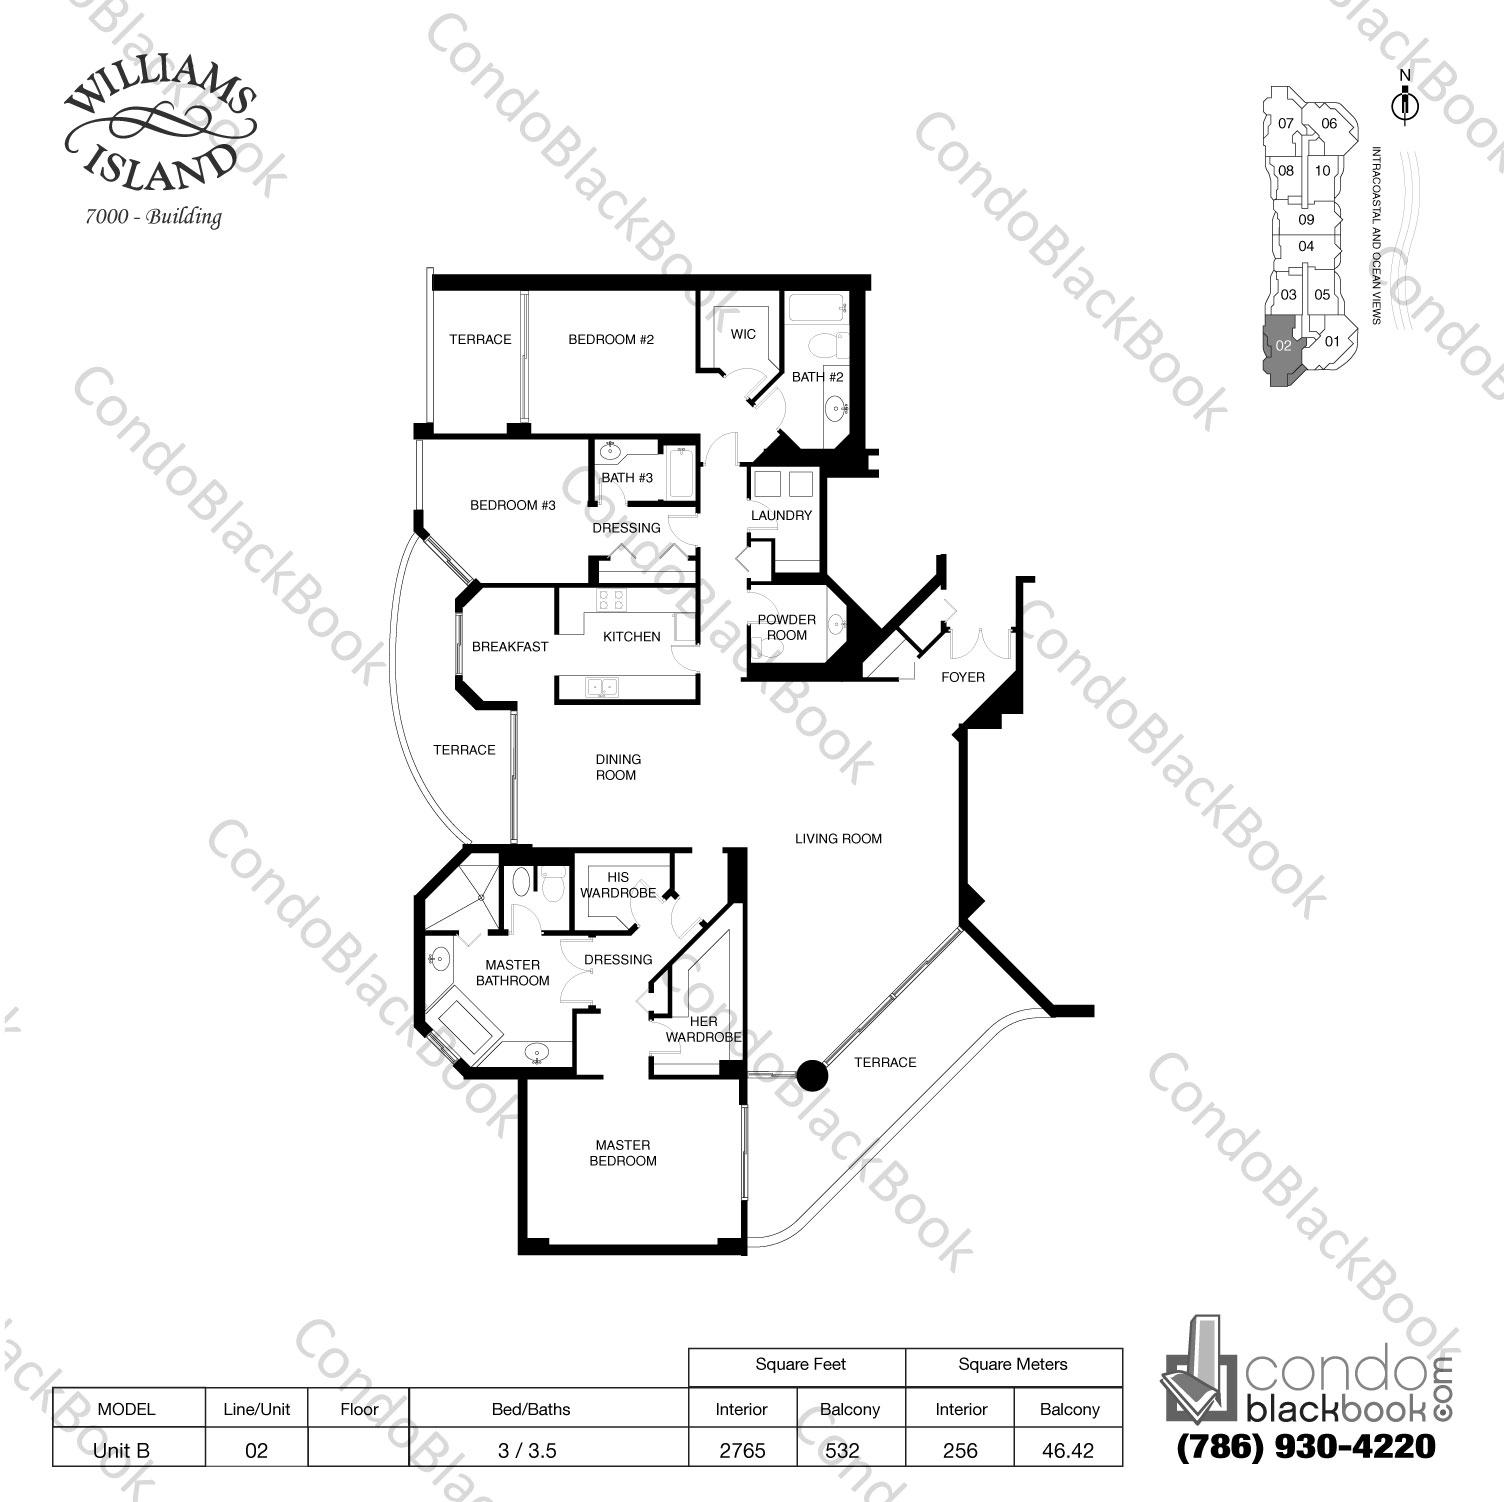 Floor plan for Williams Island 7000 Aventura, model Unit B, line 02, 3 / 3.5 bedrooms, 2765 sq ft